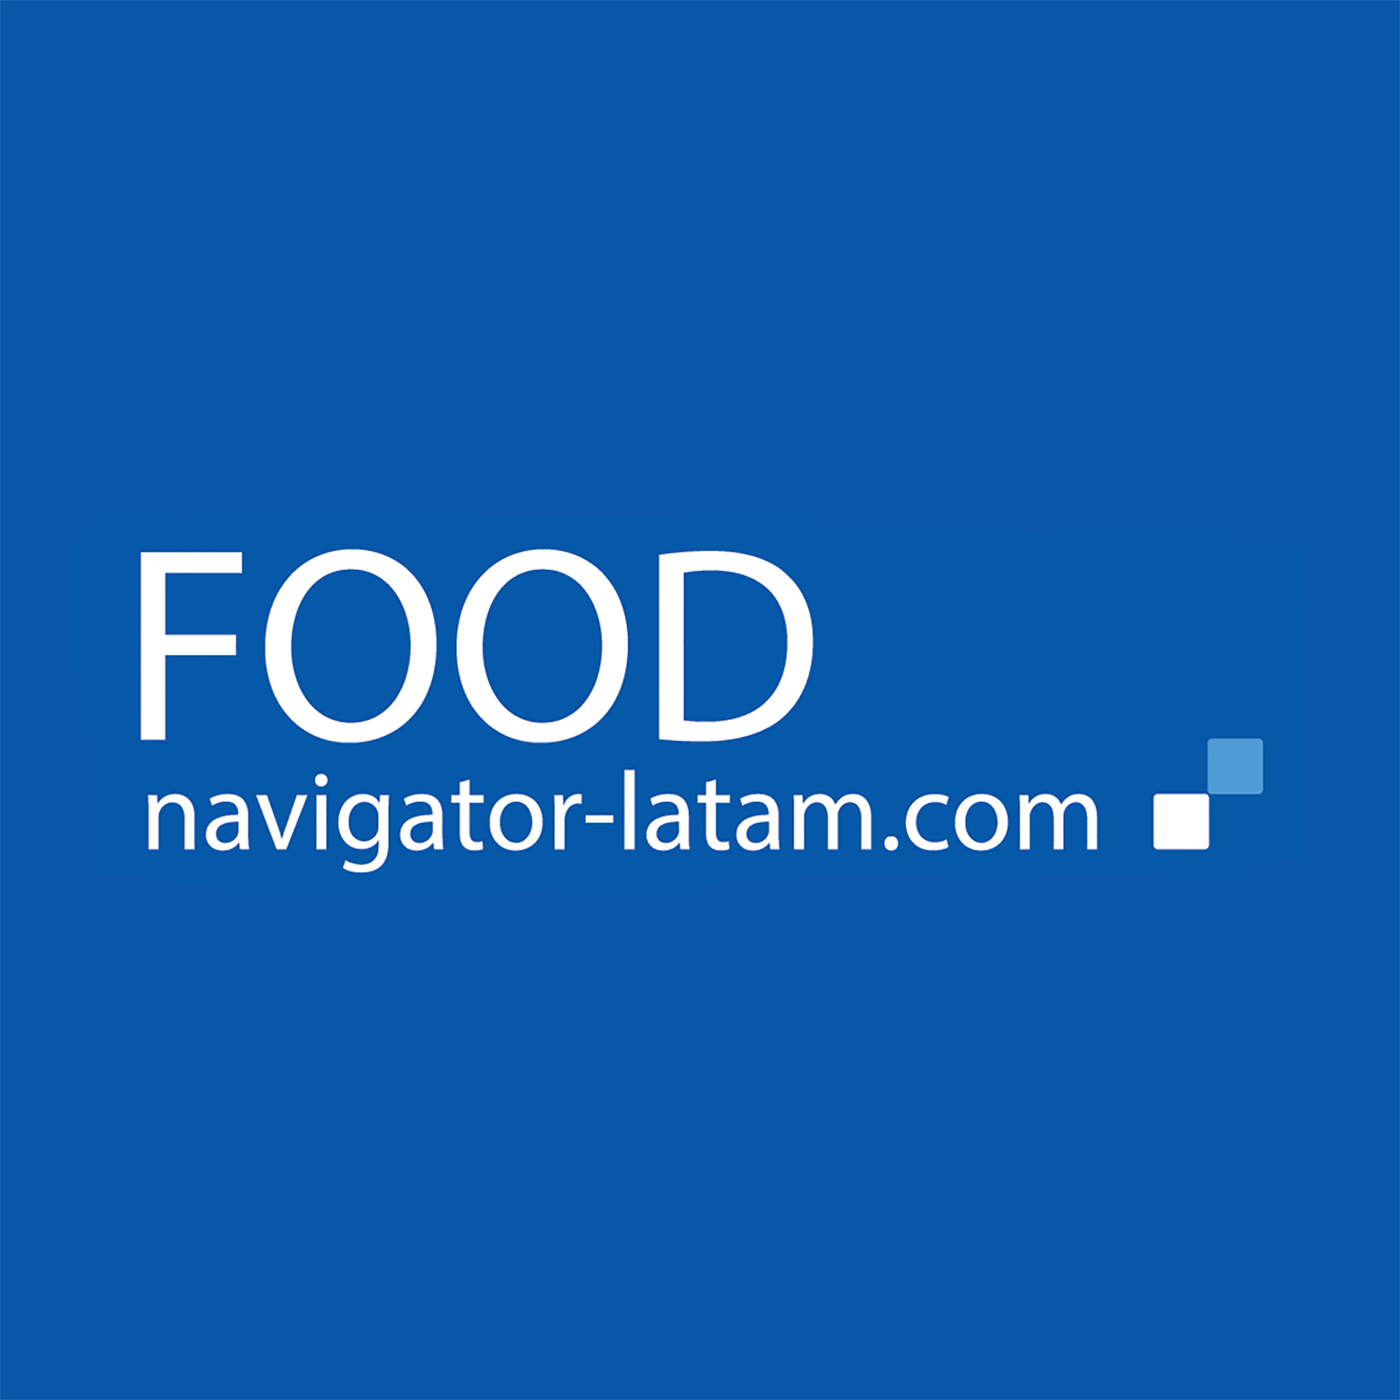 Food Ingredients & Food Science - Additives, Flavours, Starch